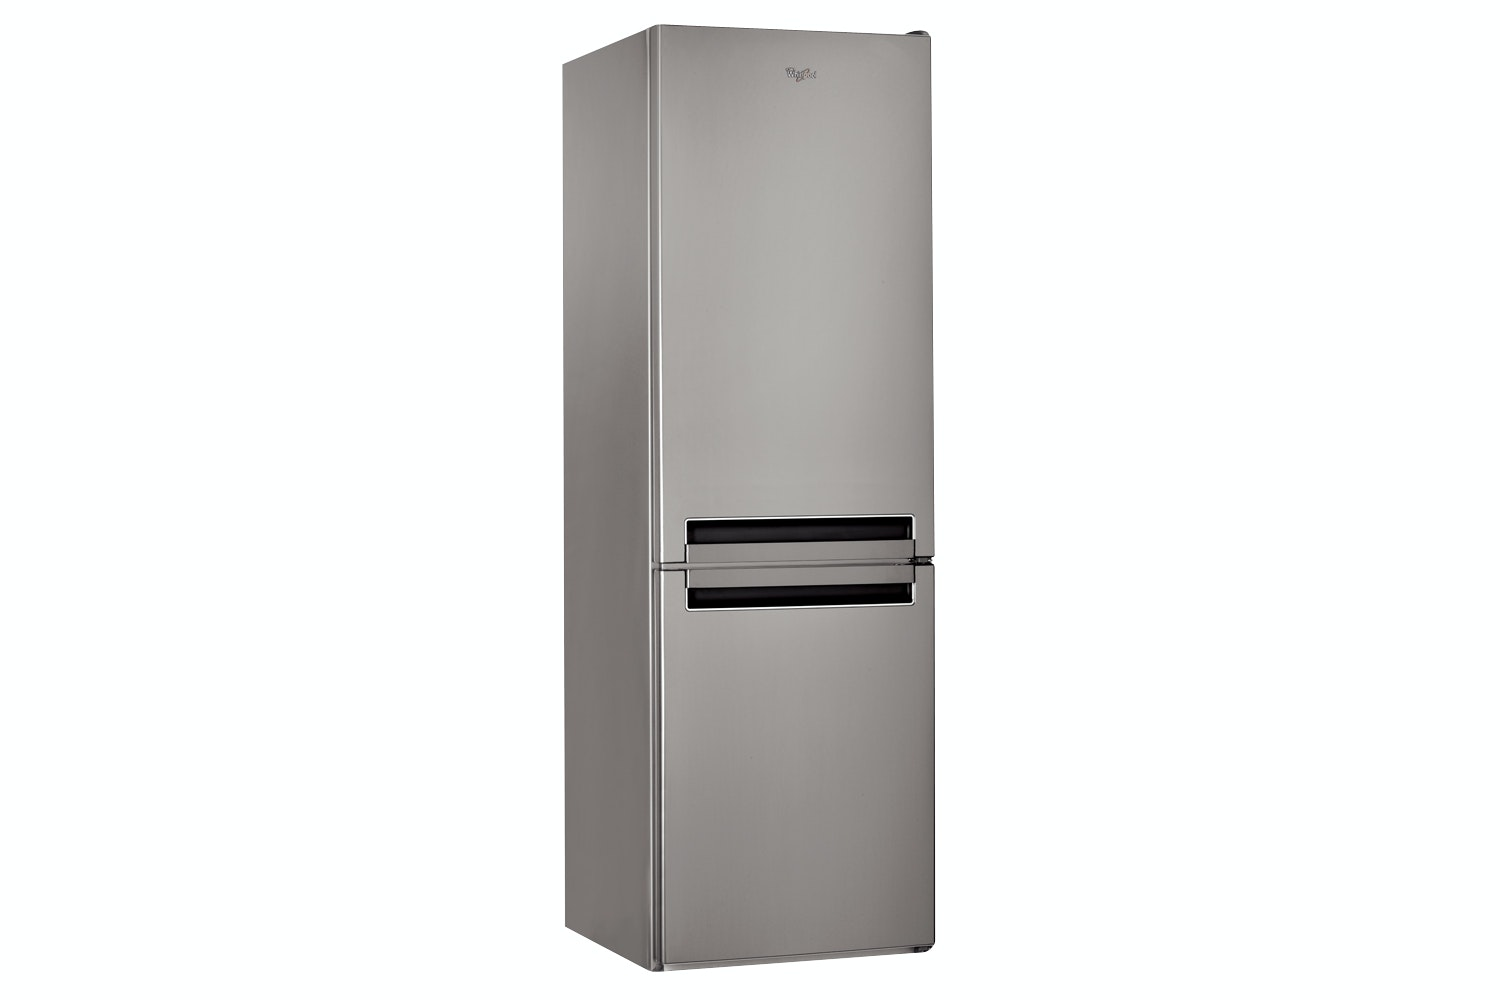 Whirlpool 60cm Freestanding Fridge Freezer | BLF8121OX